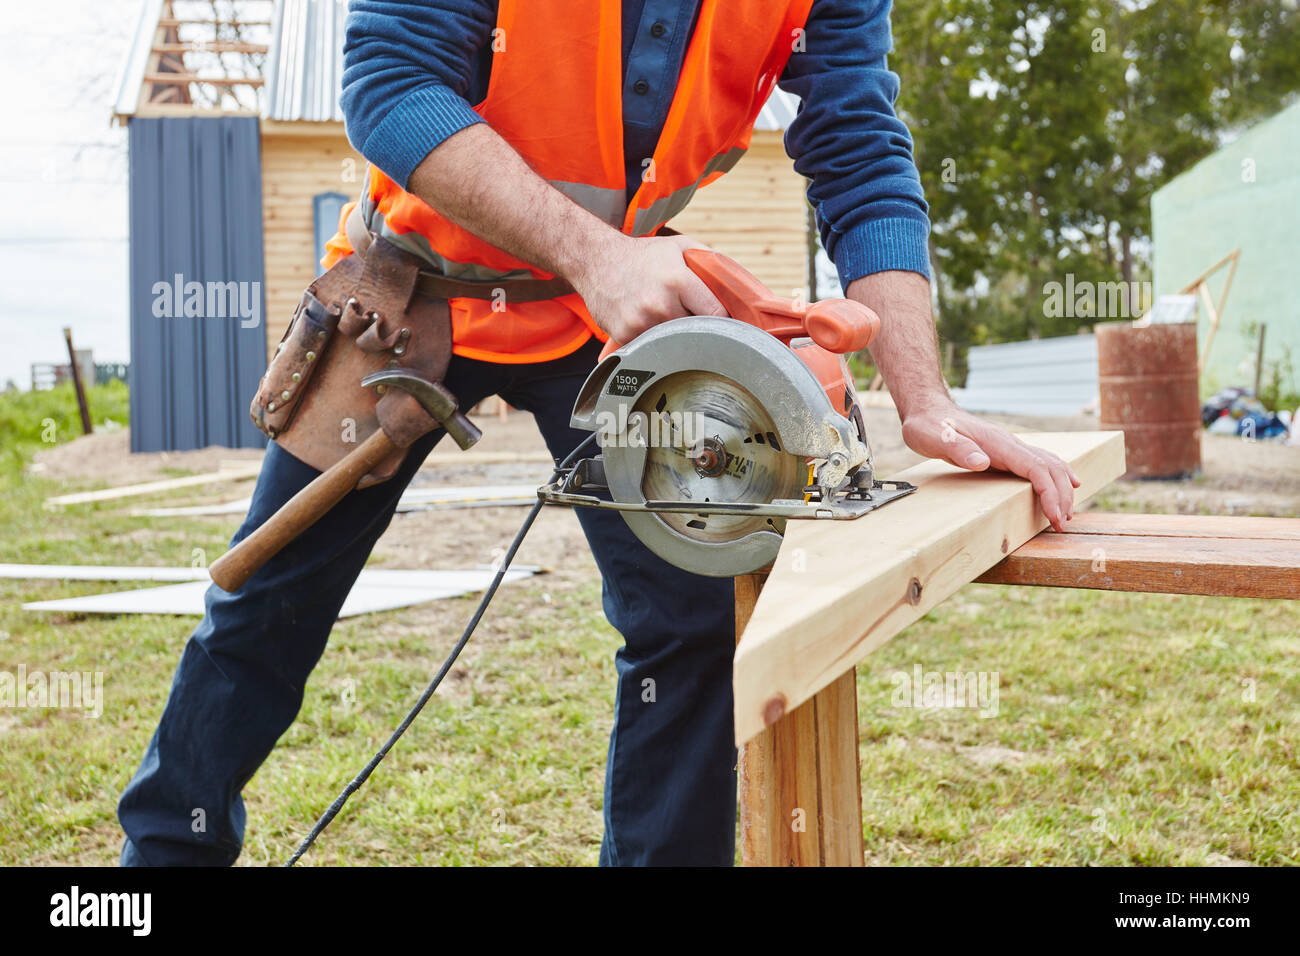 Team Saw Stock Photos Images Page 3 Alamy Wiring Diagram For Craftsman Circular Used By During Diy Construction Project Image